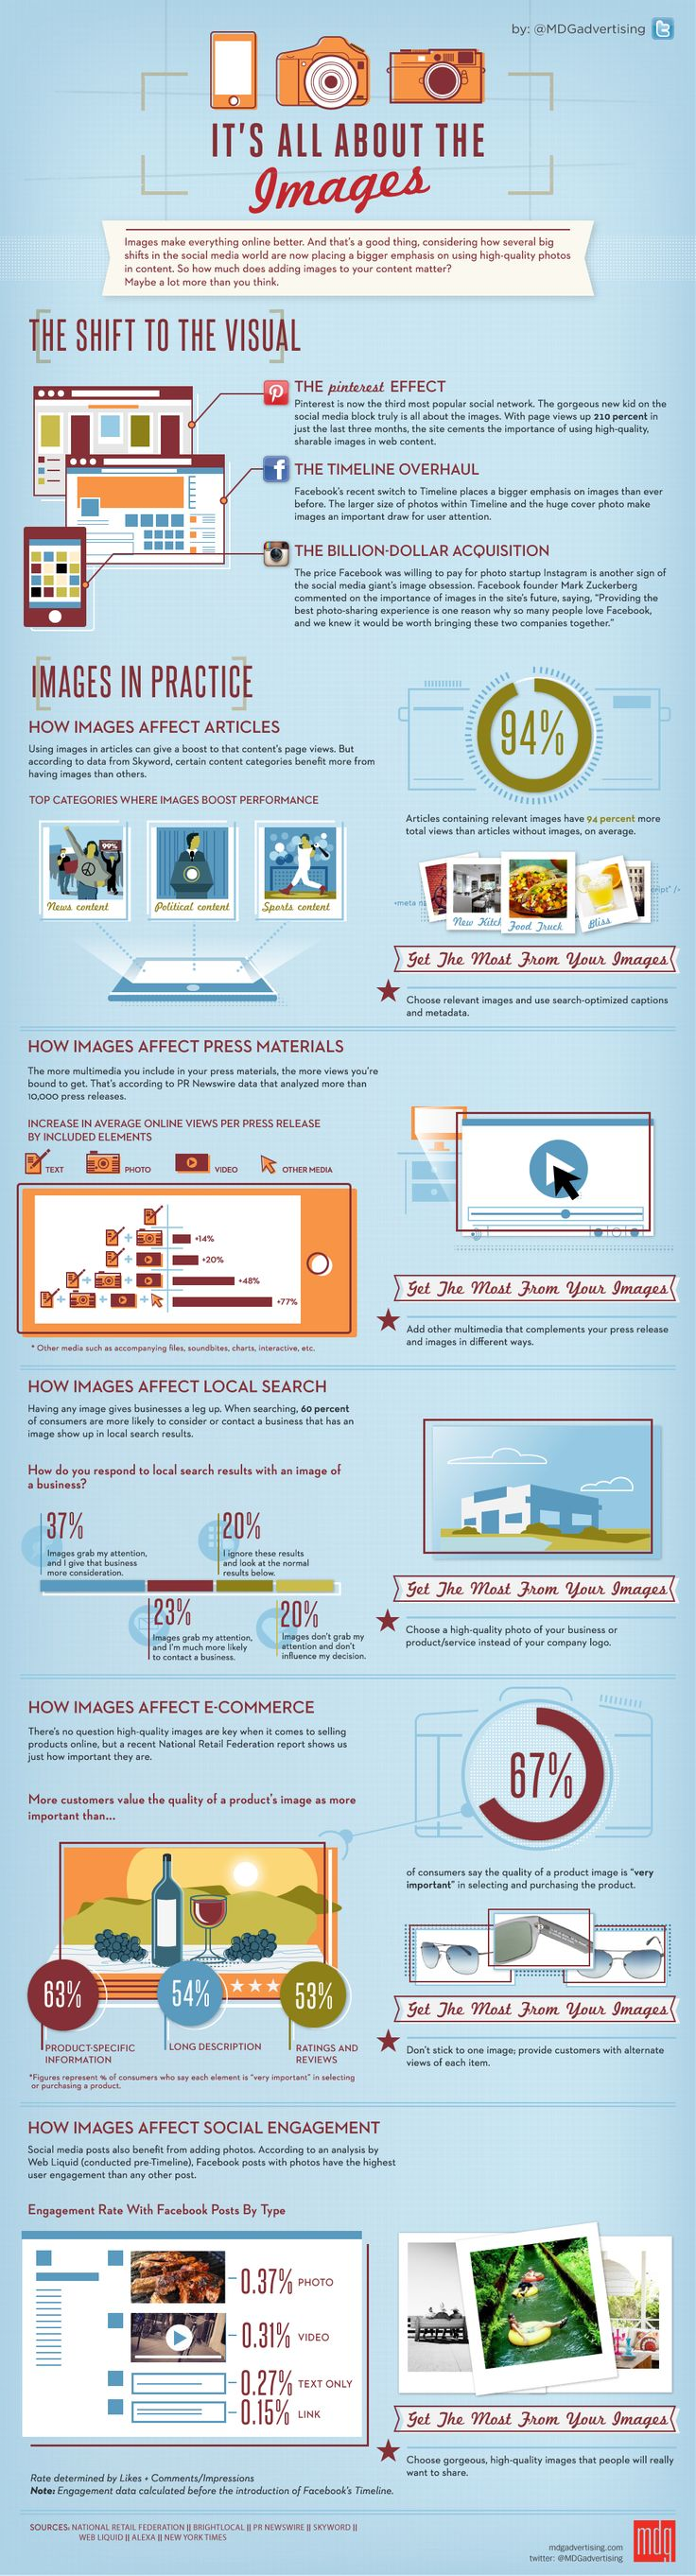 the importance of visuals in ecommerice and online communications #infographic: Social Media Tips, Social Media Marketing, Web Design, Press Relea, Social Media Infographic, Image, Visual Communication, Business Branding, Socialmedia